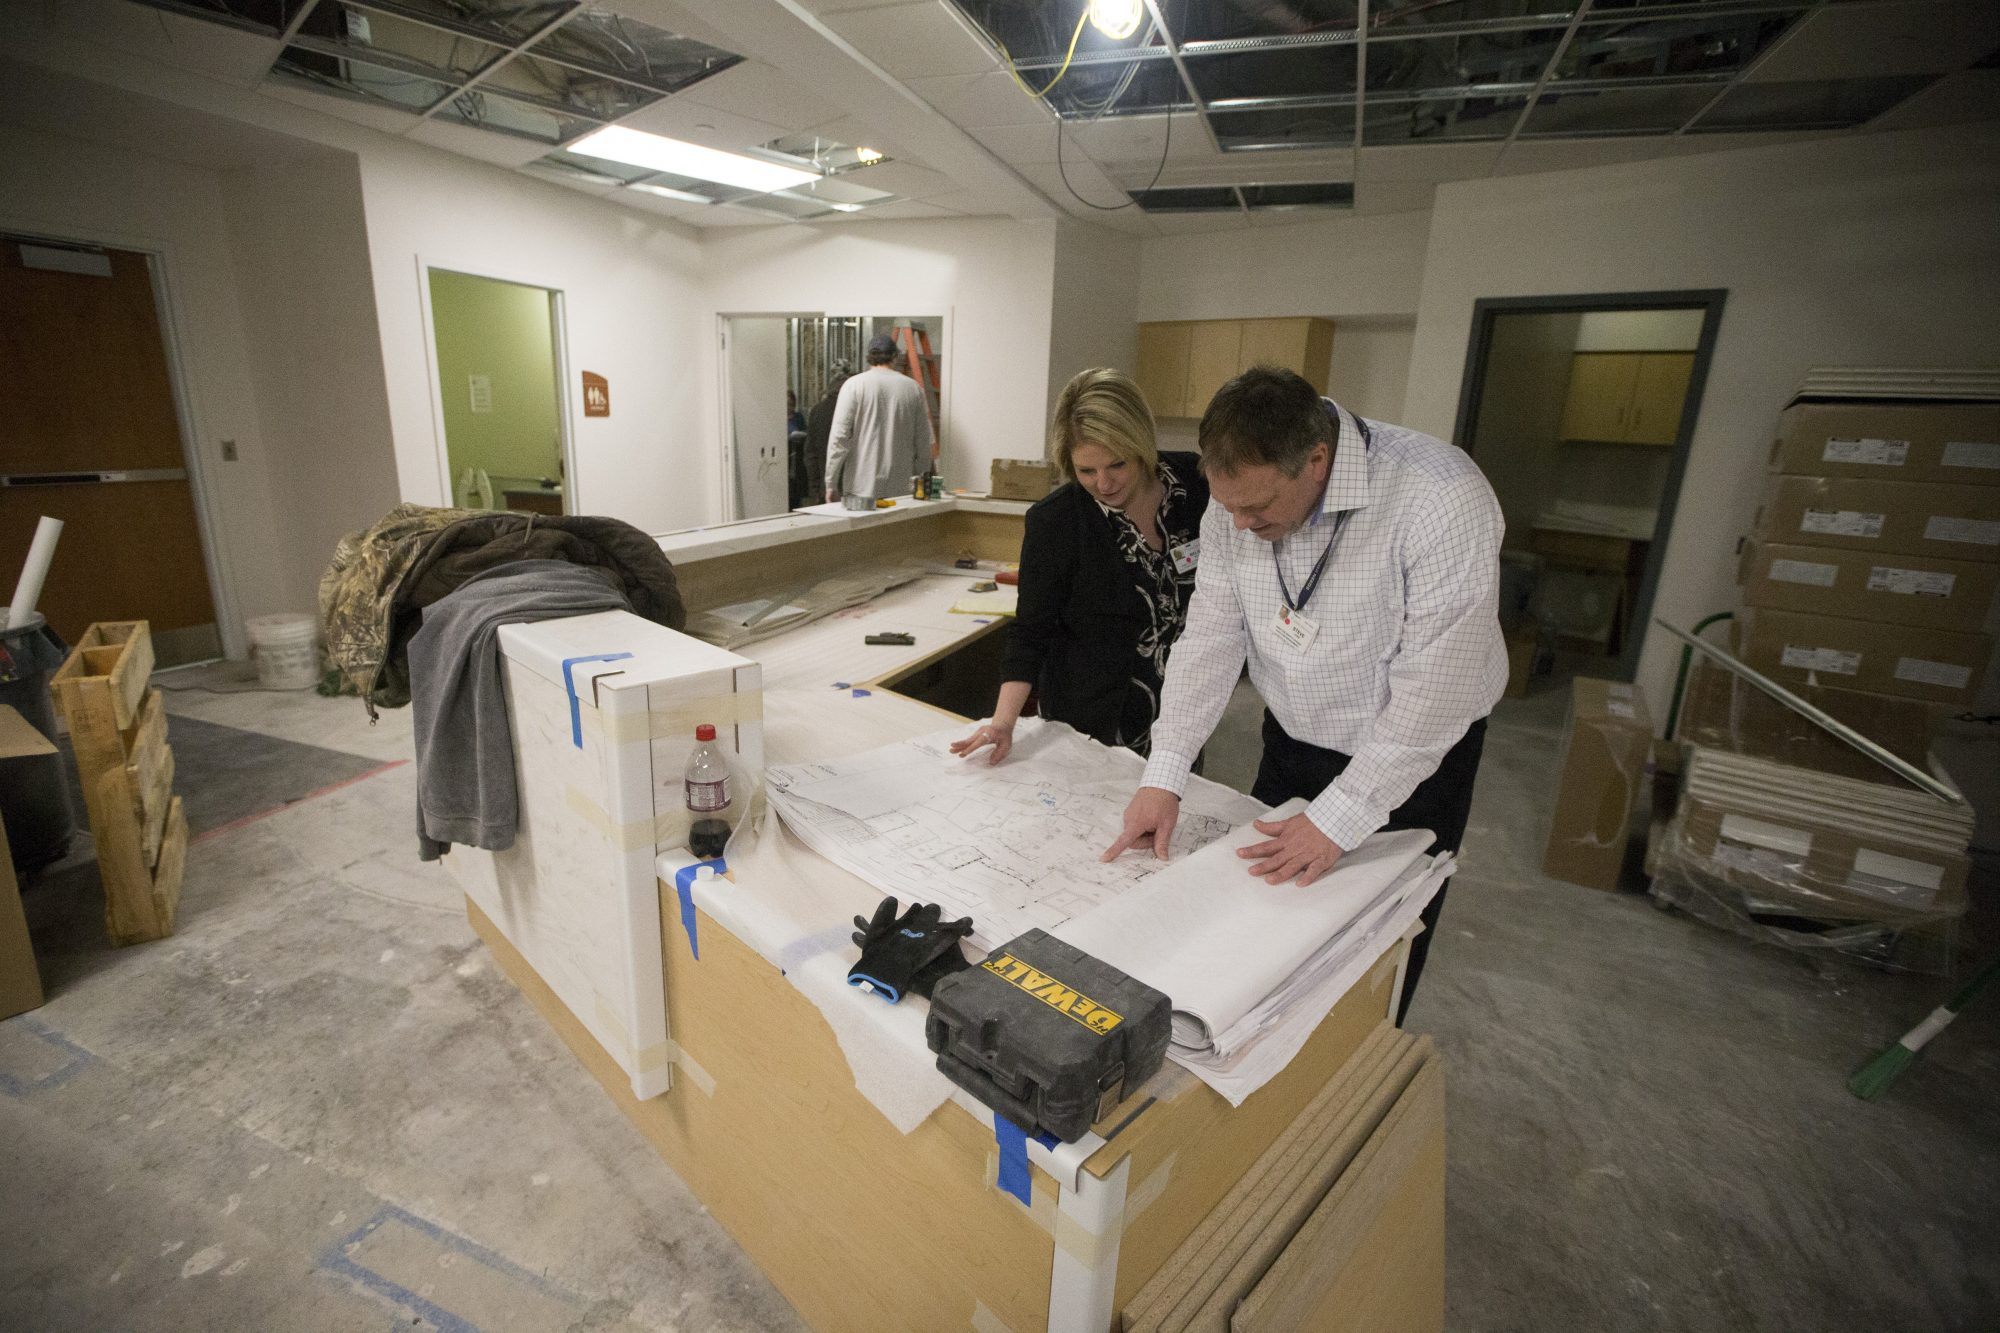 Melissa Rackmill, director of invasive and non invasive cardiology, and Steve Lewis, director of facilities management at the Heart Center of Niagara, at a nurses' station at the new cardiac catheterization lab at Niagara Falls Memorial Medical Center while it was under construction in February. (John Hickey/Buffalo News file photo)